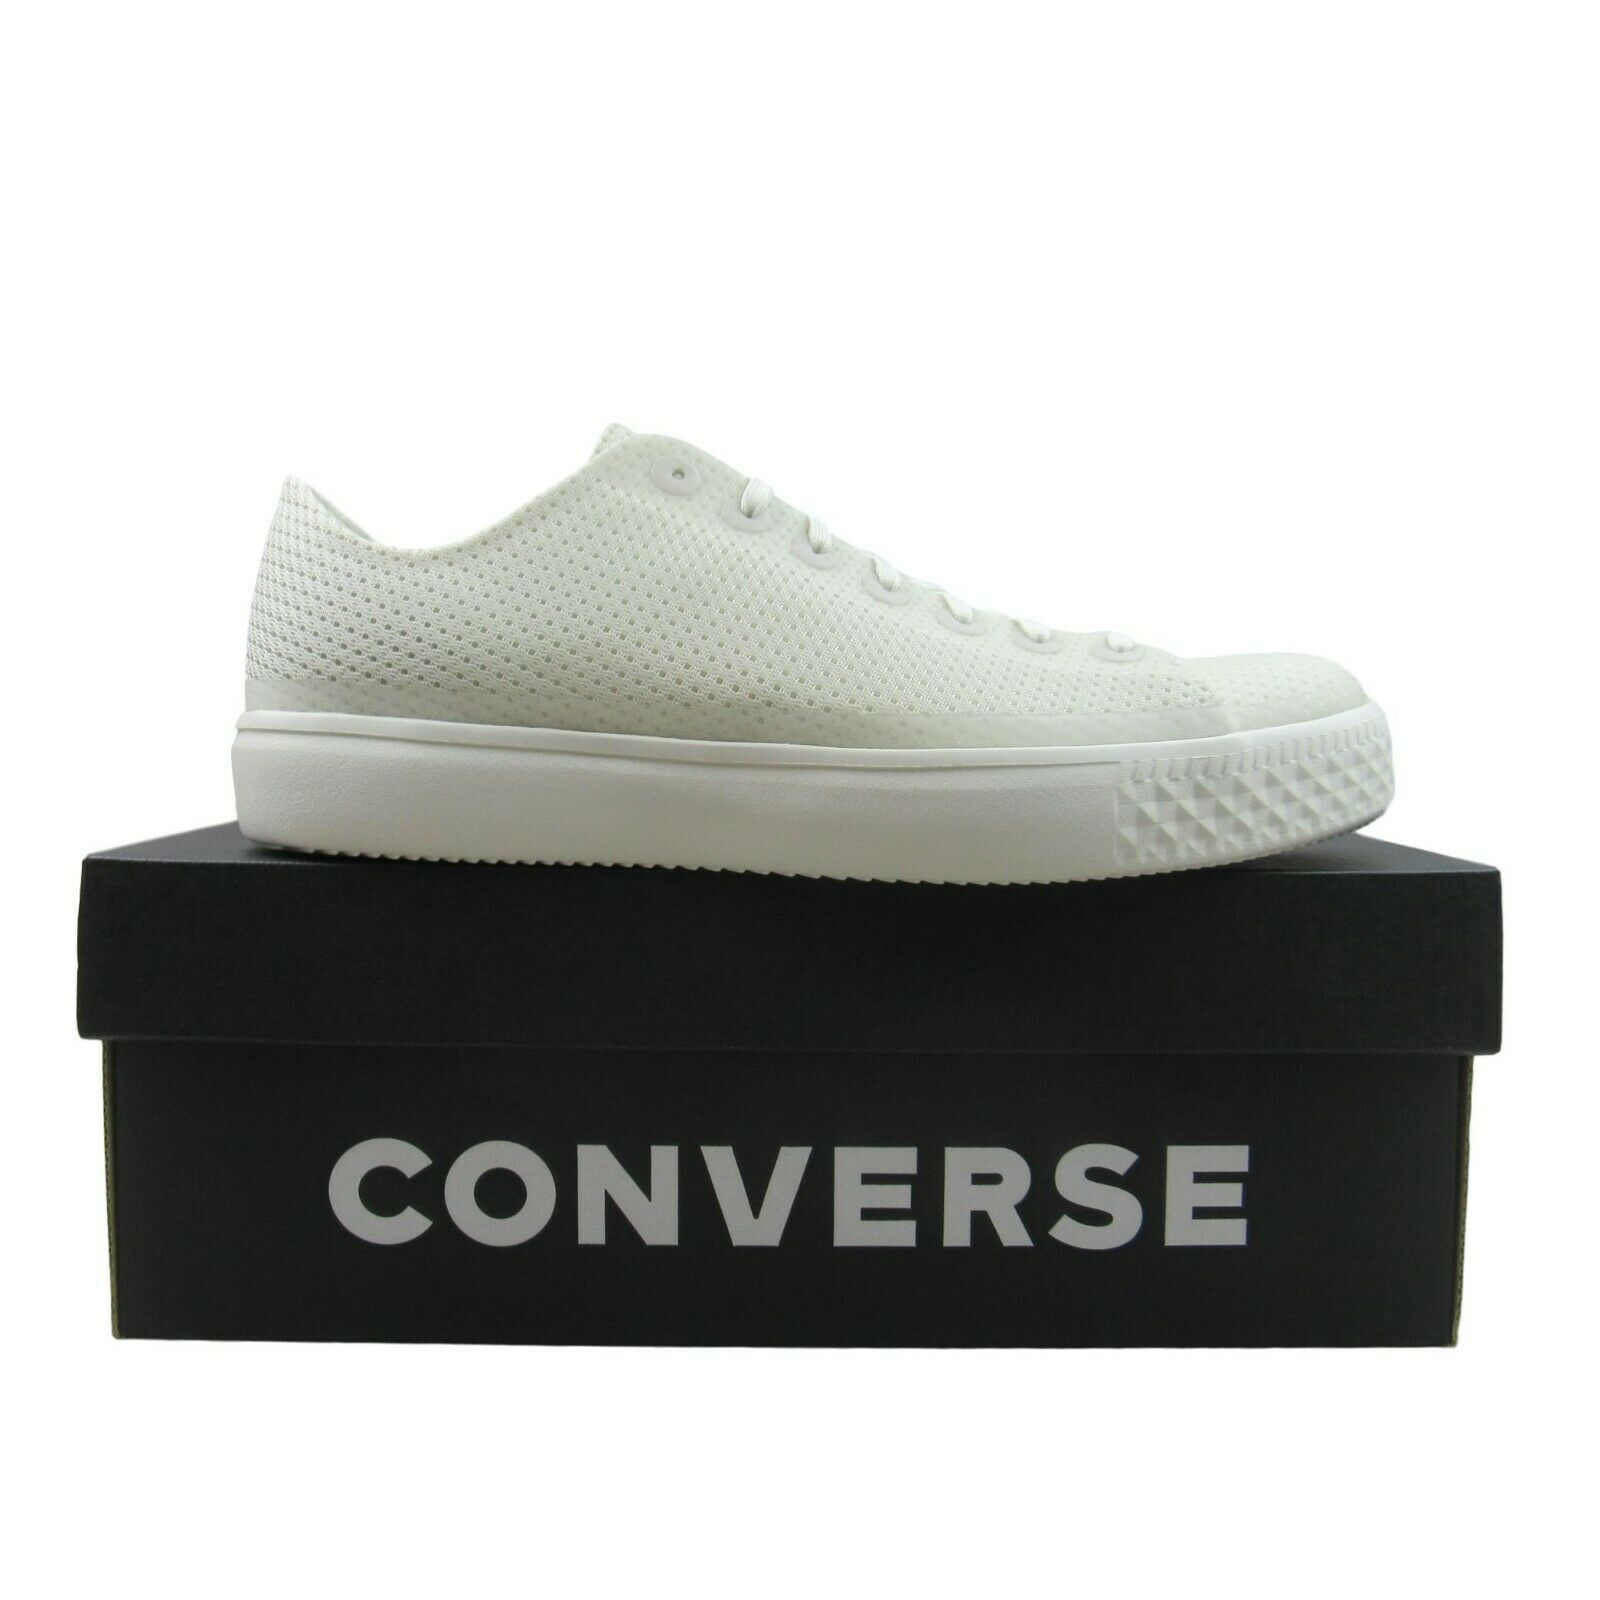 Converse CTAS Modern OX Buff White Shoes Size 9.5 Mens NEW 156652C